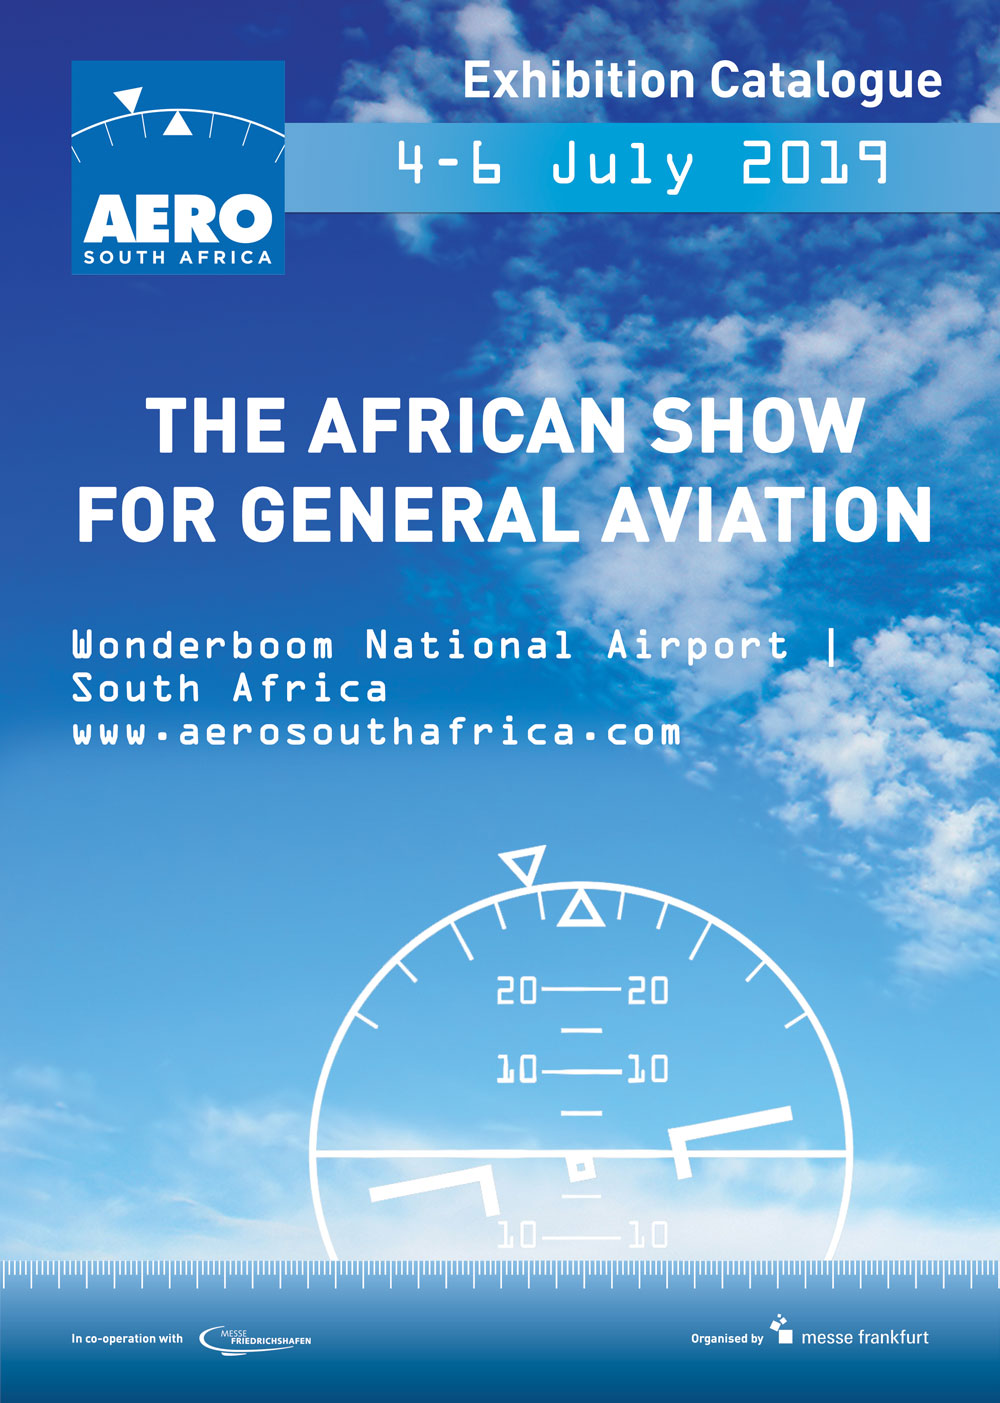 AERO South Africa exhibition catalogue cover